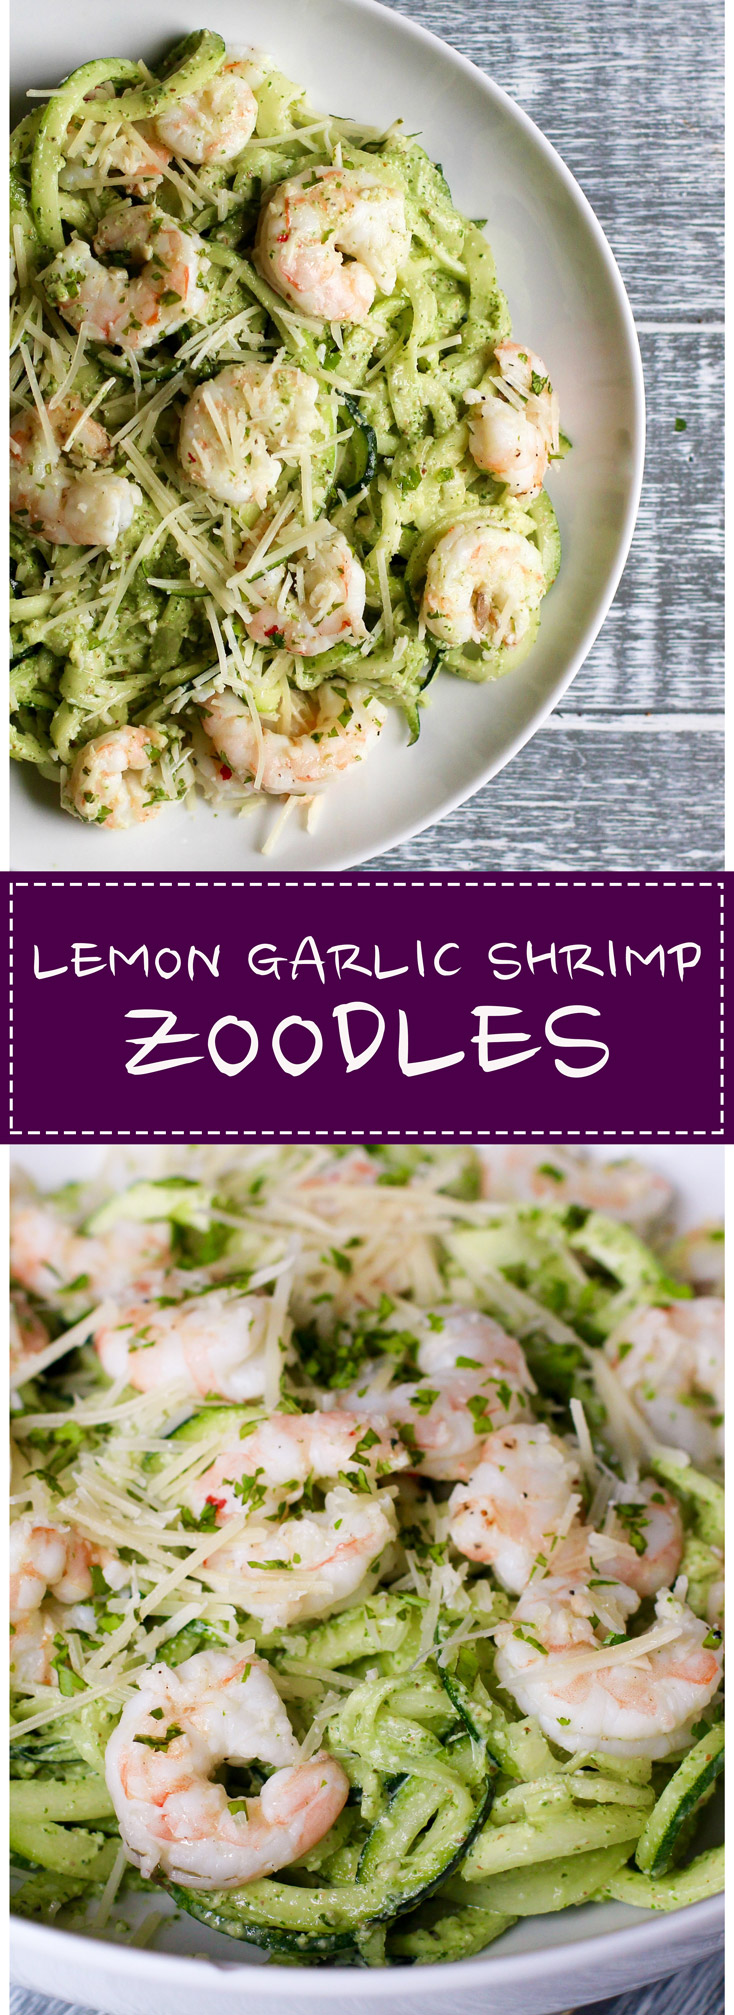 Zucchini noodles are healthy, veggie packed,and so easy to make! Add some zesty garlic shrimp and dinner is ready in 10 mins!